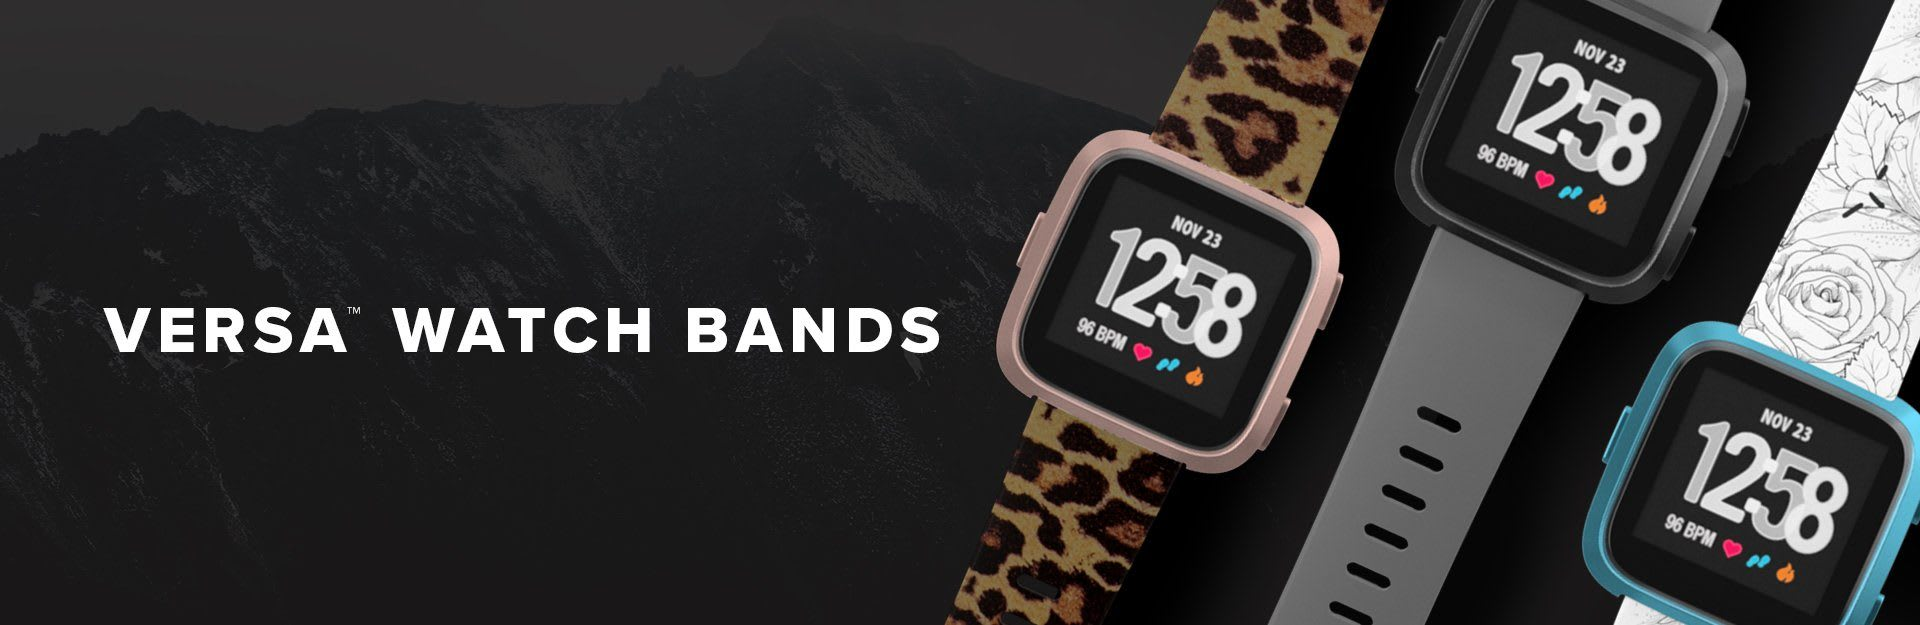 Versa Watch Bands, leopard, solid grey, winter rose watch bands next to each other